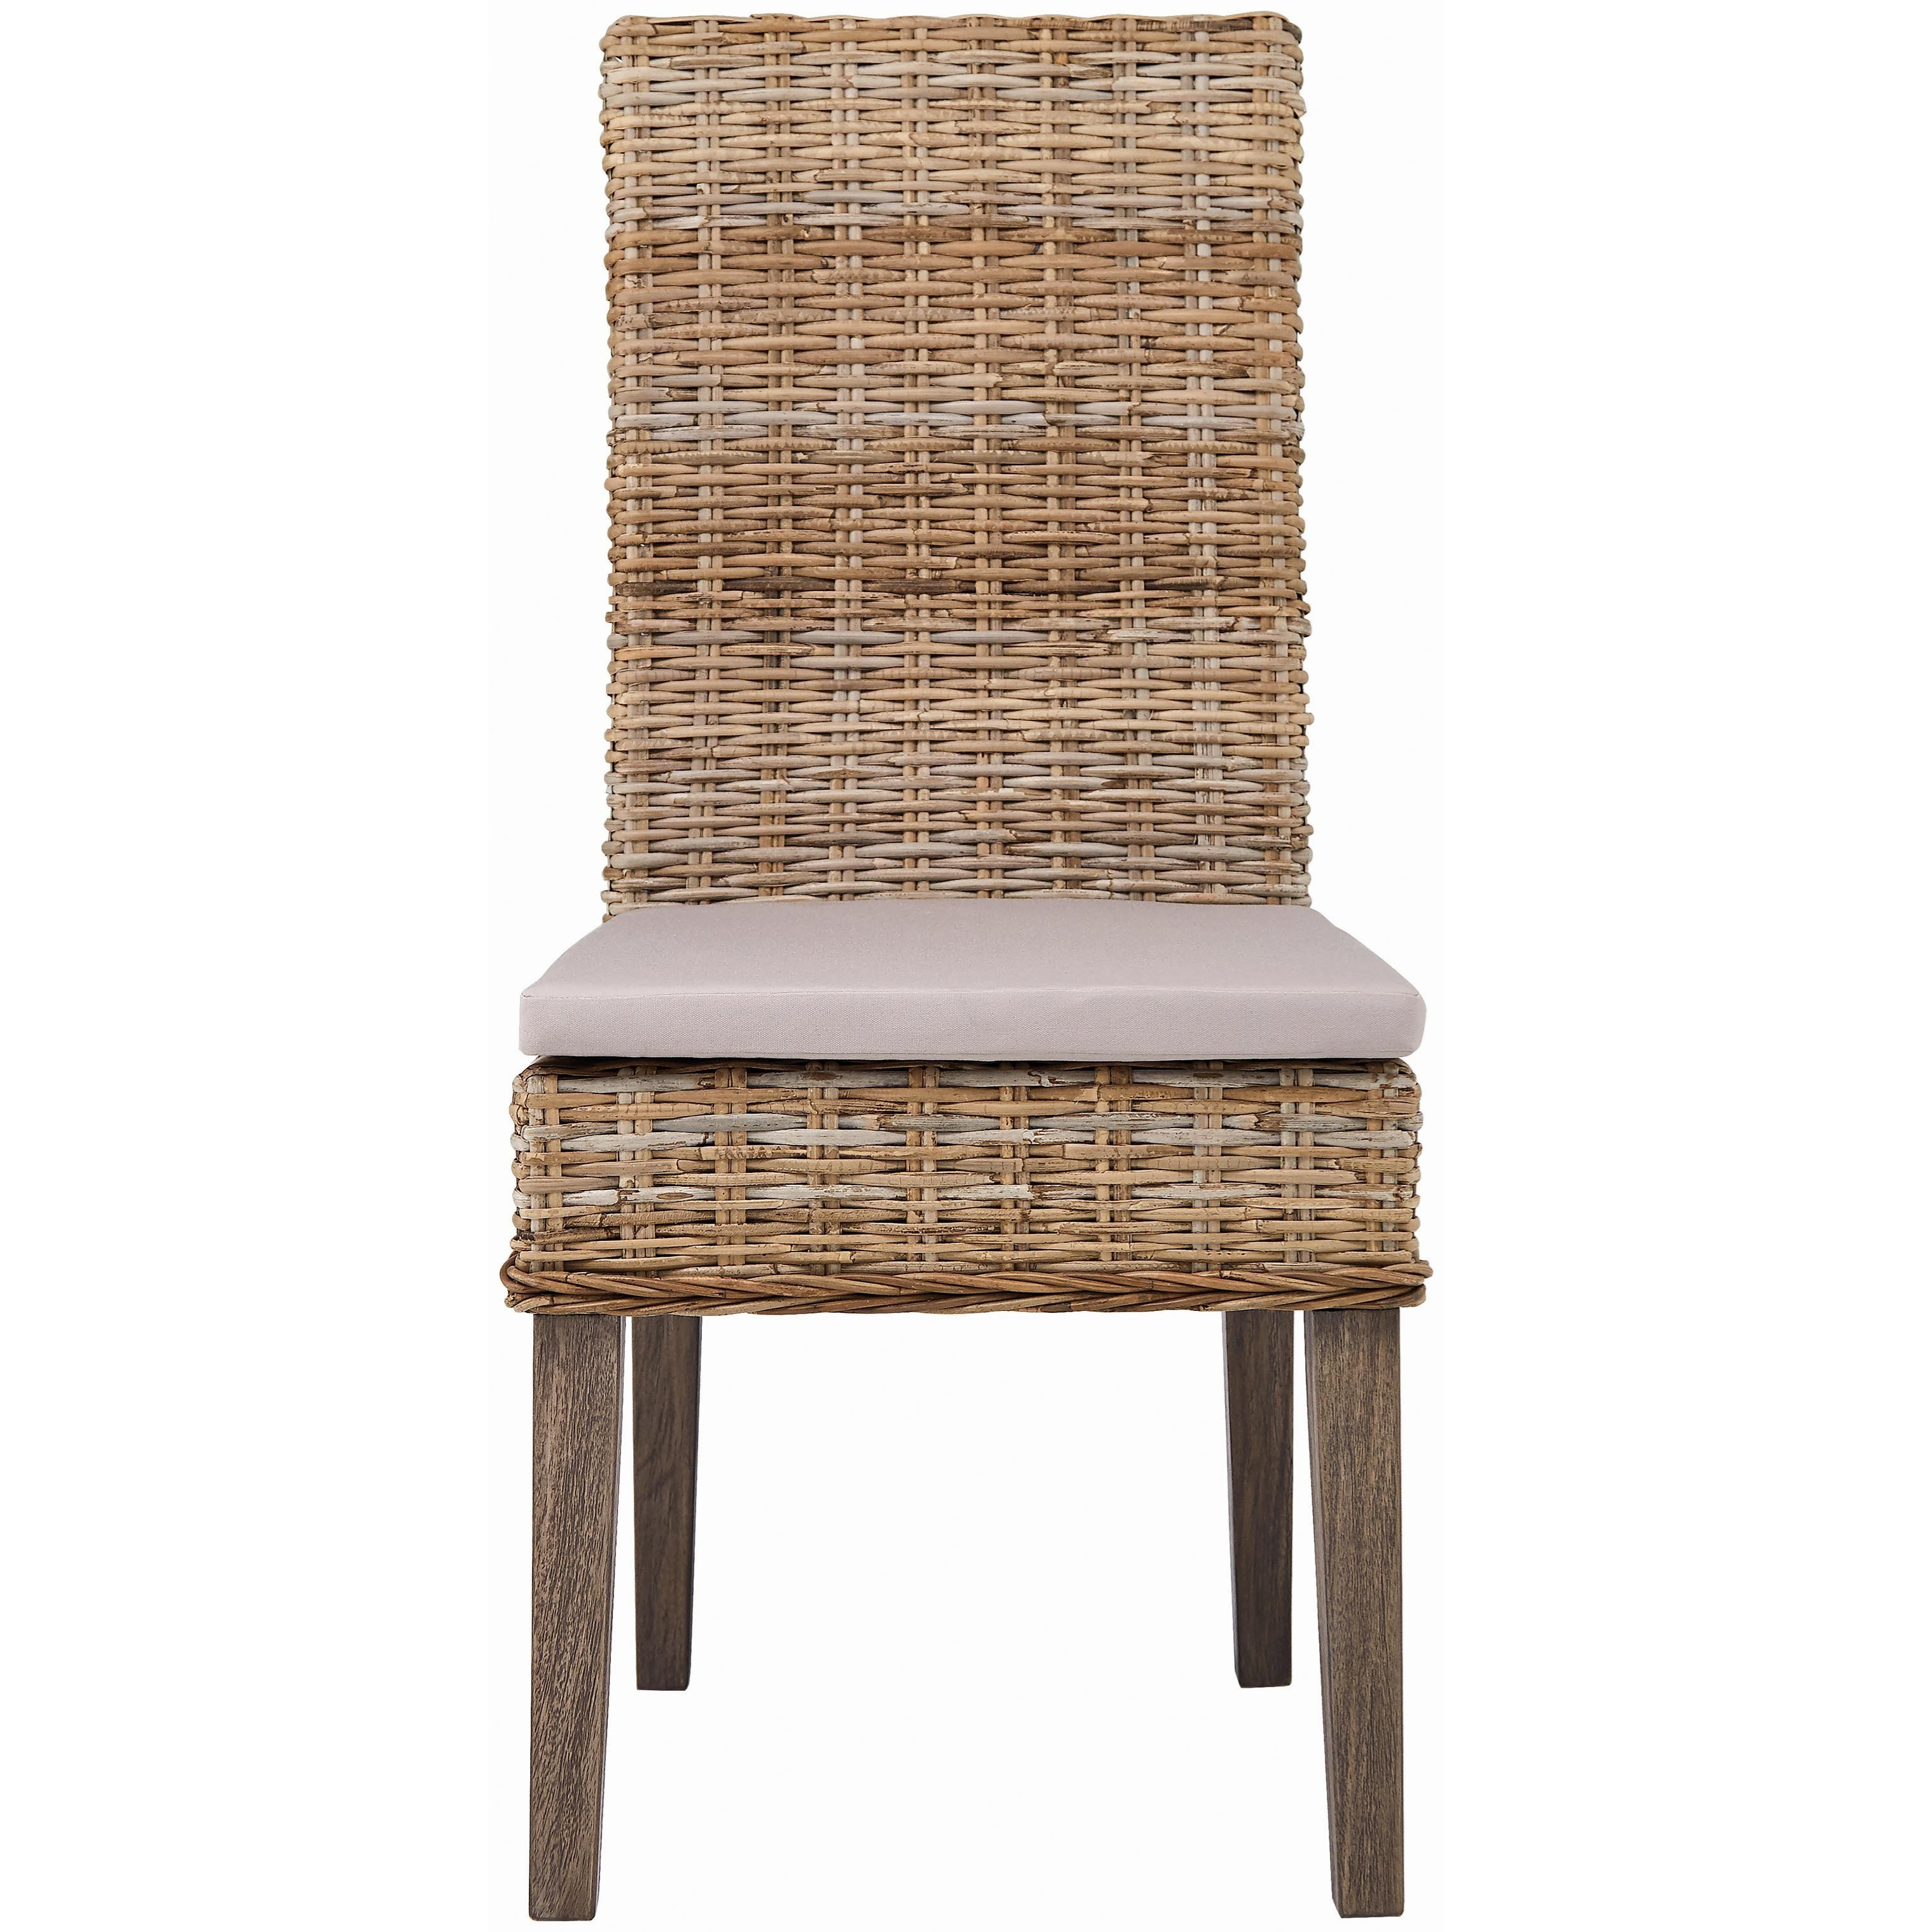 Rattan Chairs 103803 Rattan Dining Chair By Scott Living At Belfort Furniture